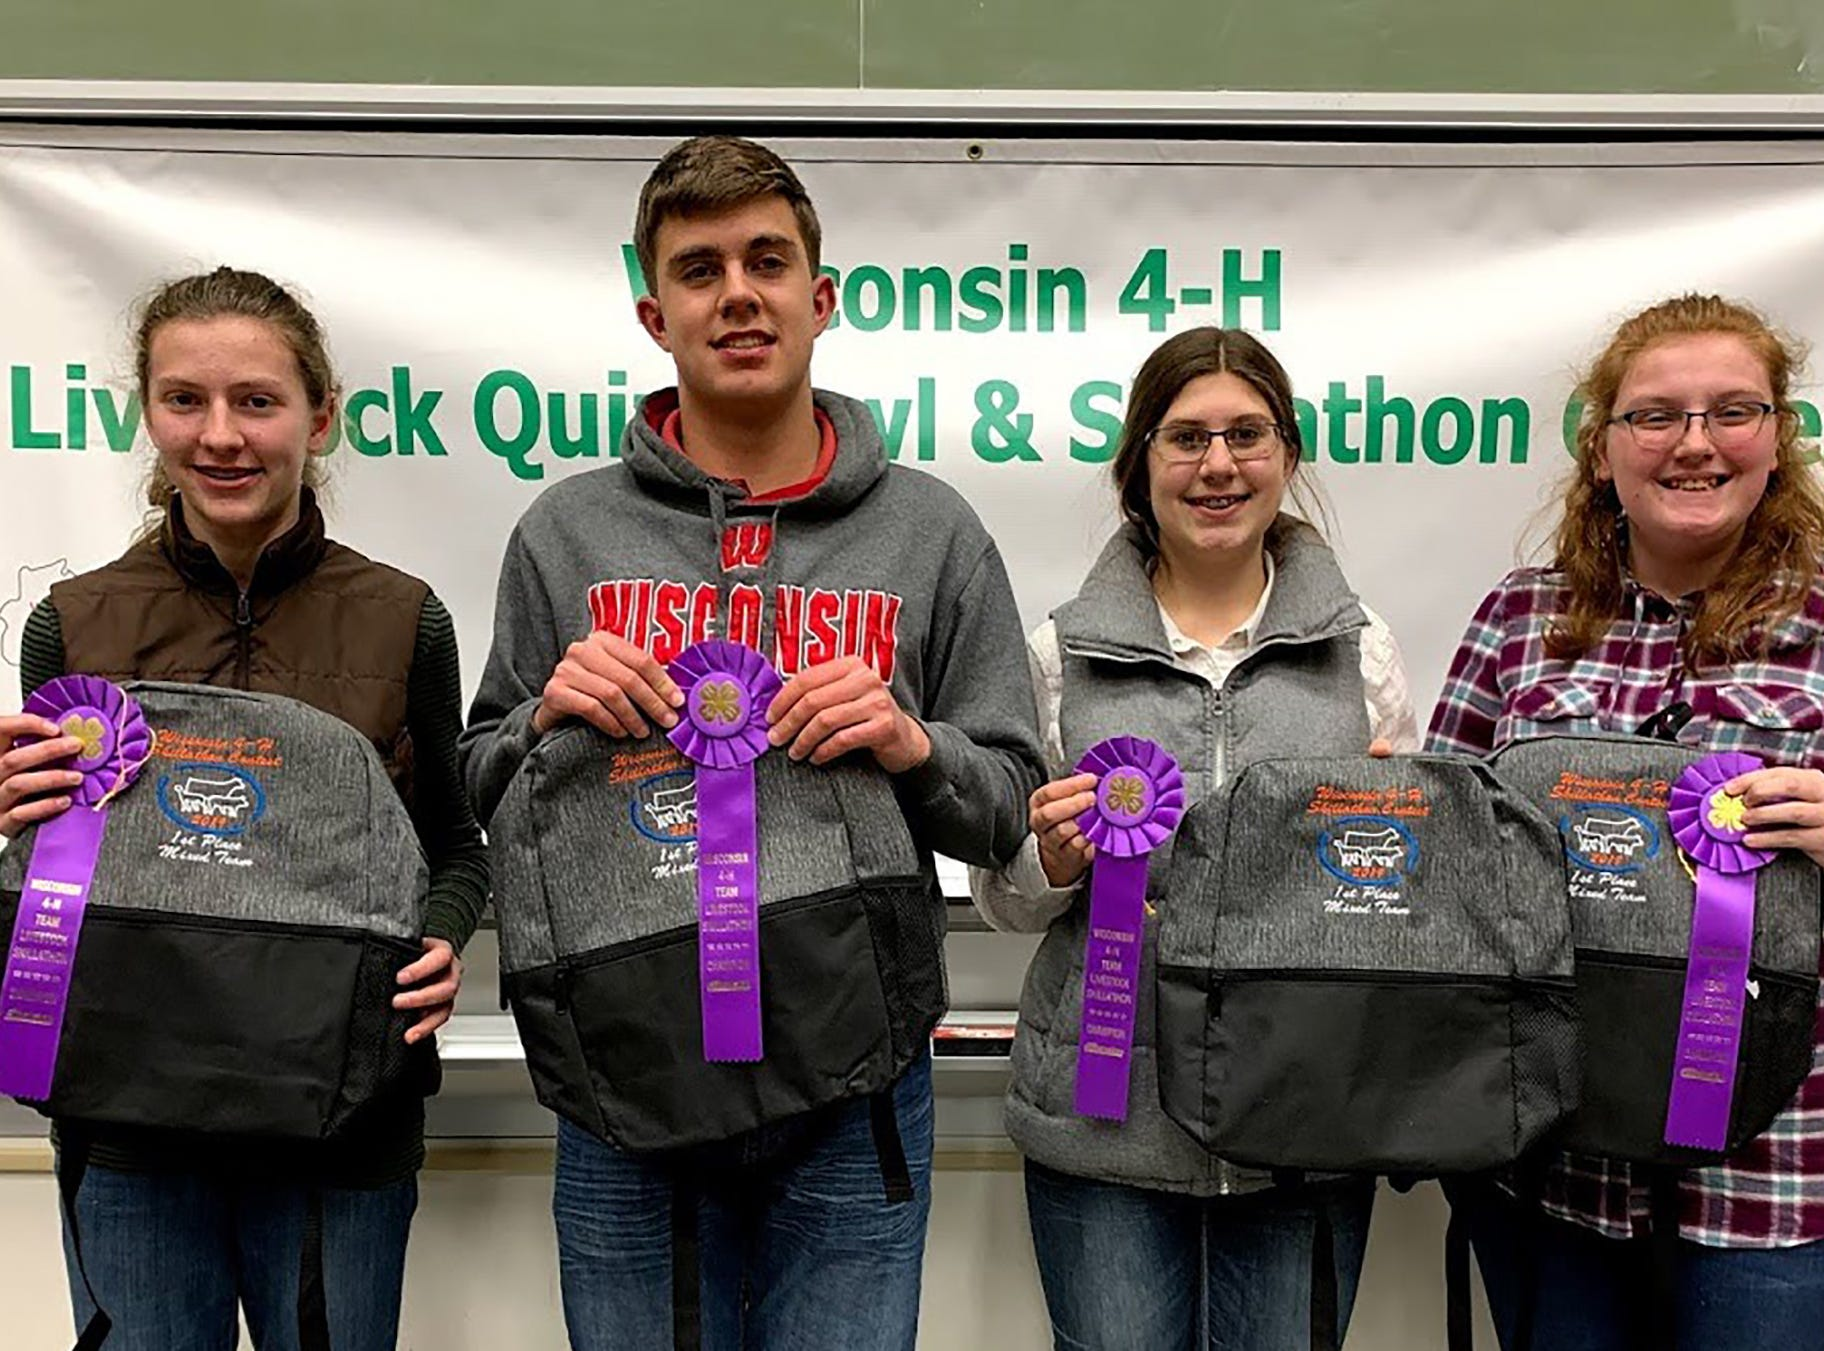 The champion Mixed Skillathon team members from Grant County are (from left) Jessica Patterson, Avery Crooks, Alayna Barth, Mason Crooks.